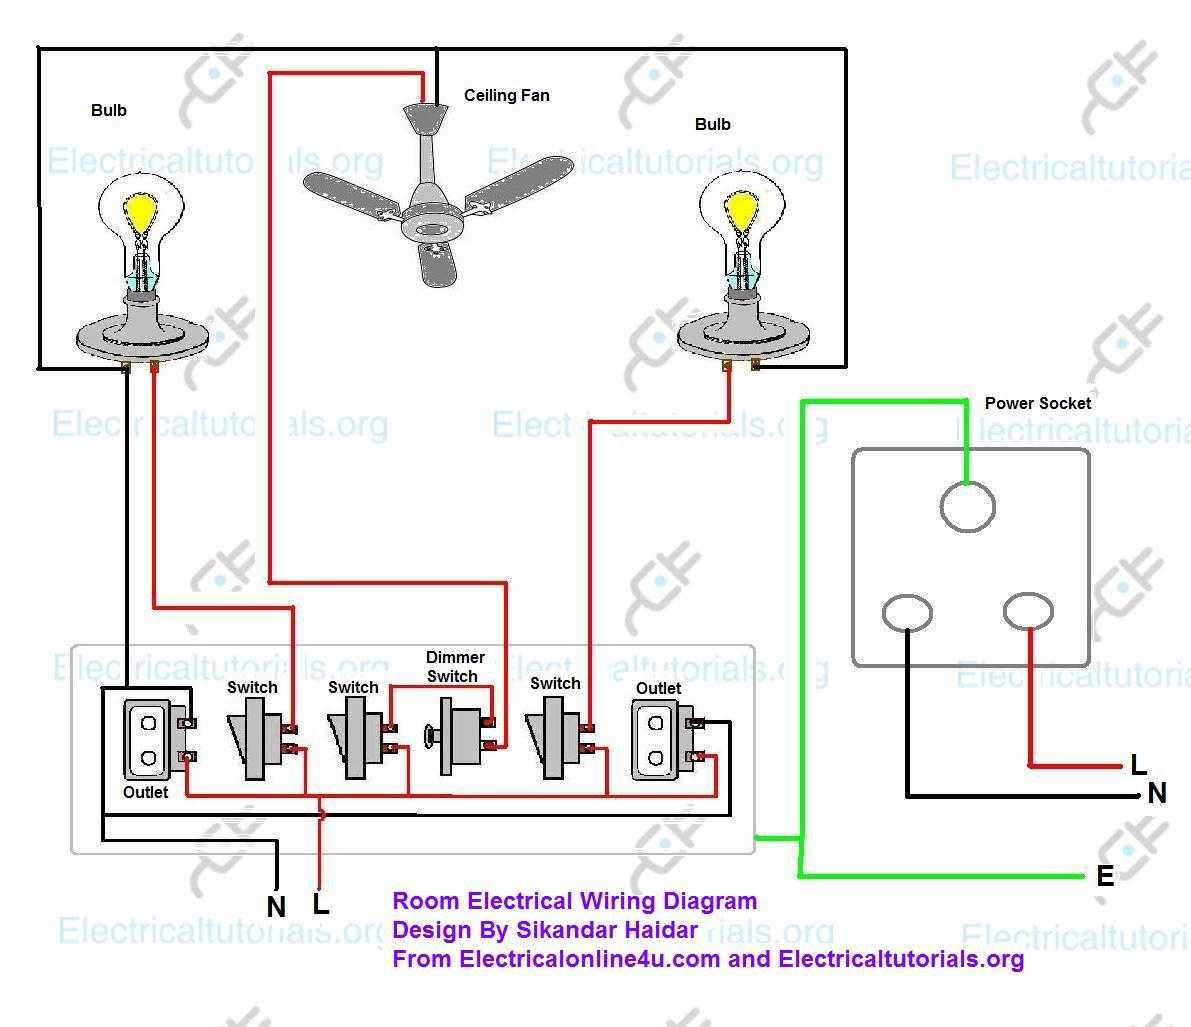 electric circuit drawing at getdrawings com free for personal use rh getdrawings com electrical wiring drawing program electrical wiring drawing software